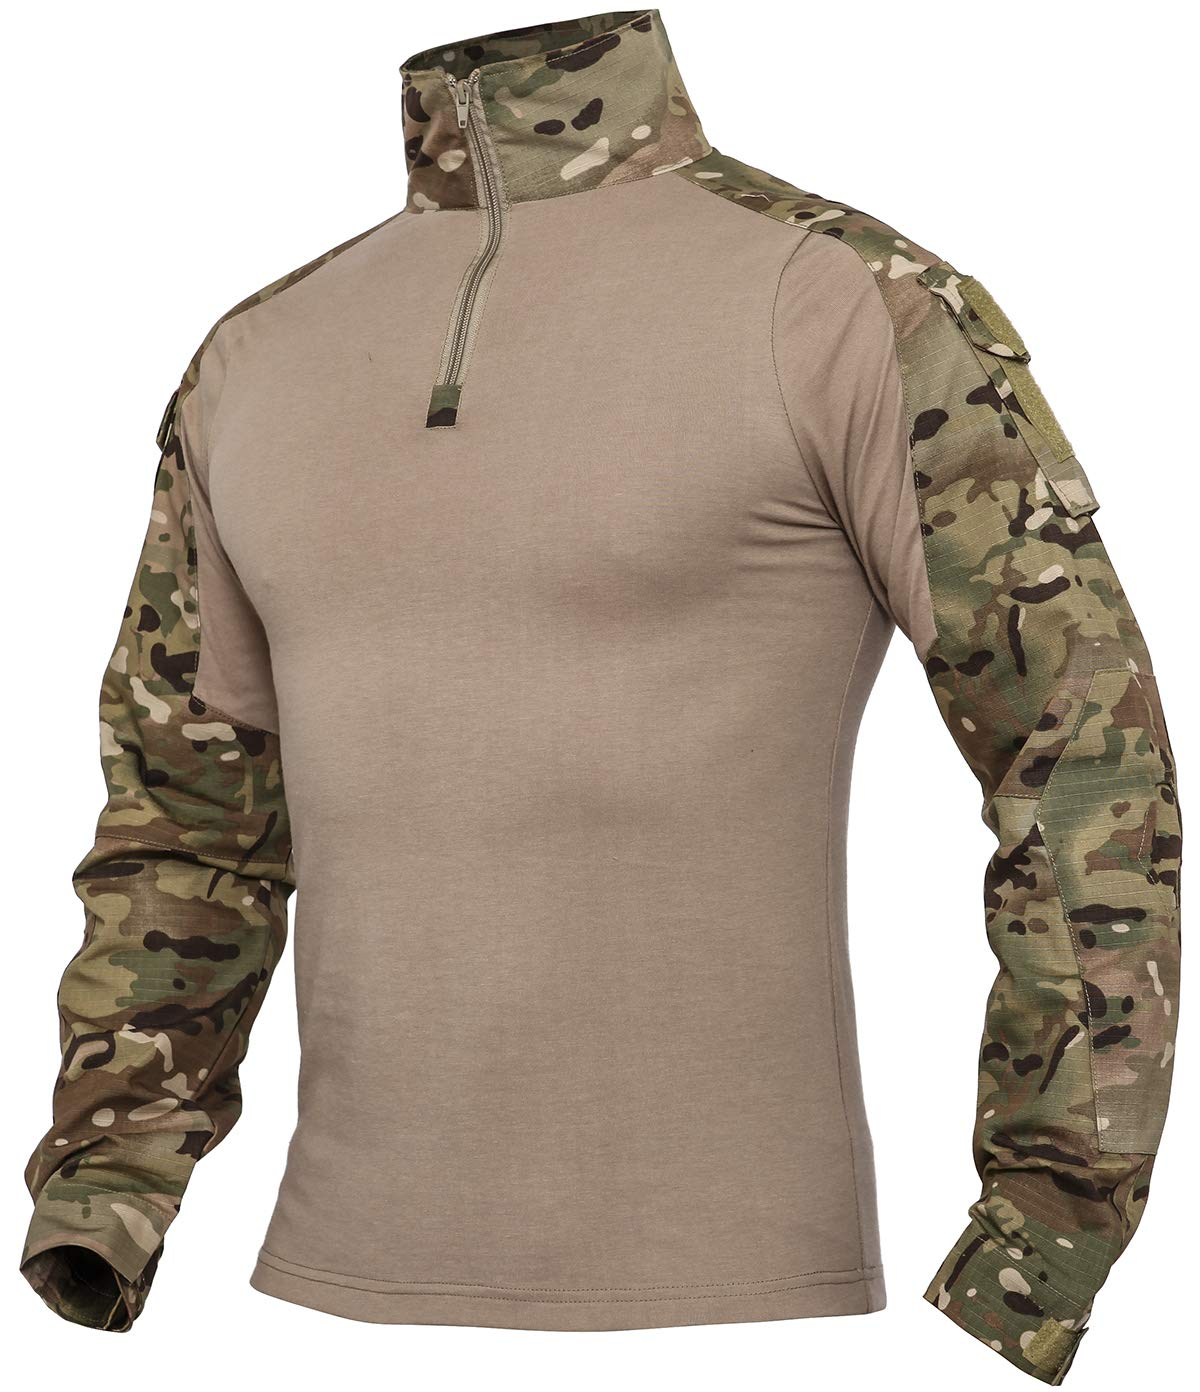 XKTTAC Tactical-Combat -Airsoft-Military-Shirt (Cp, S) by XKTTAC